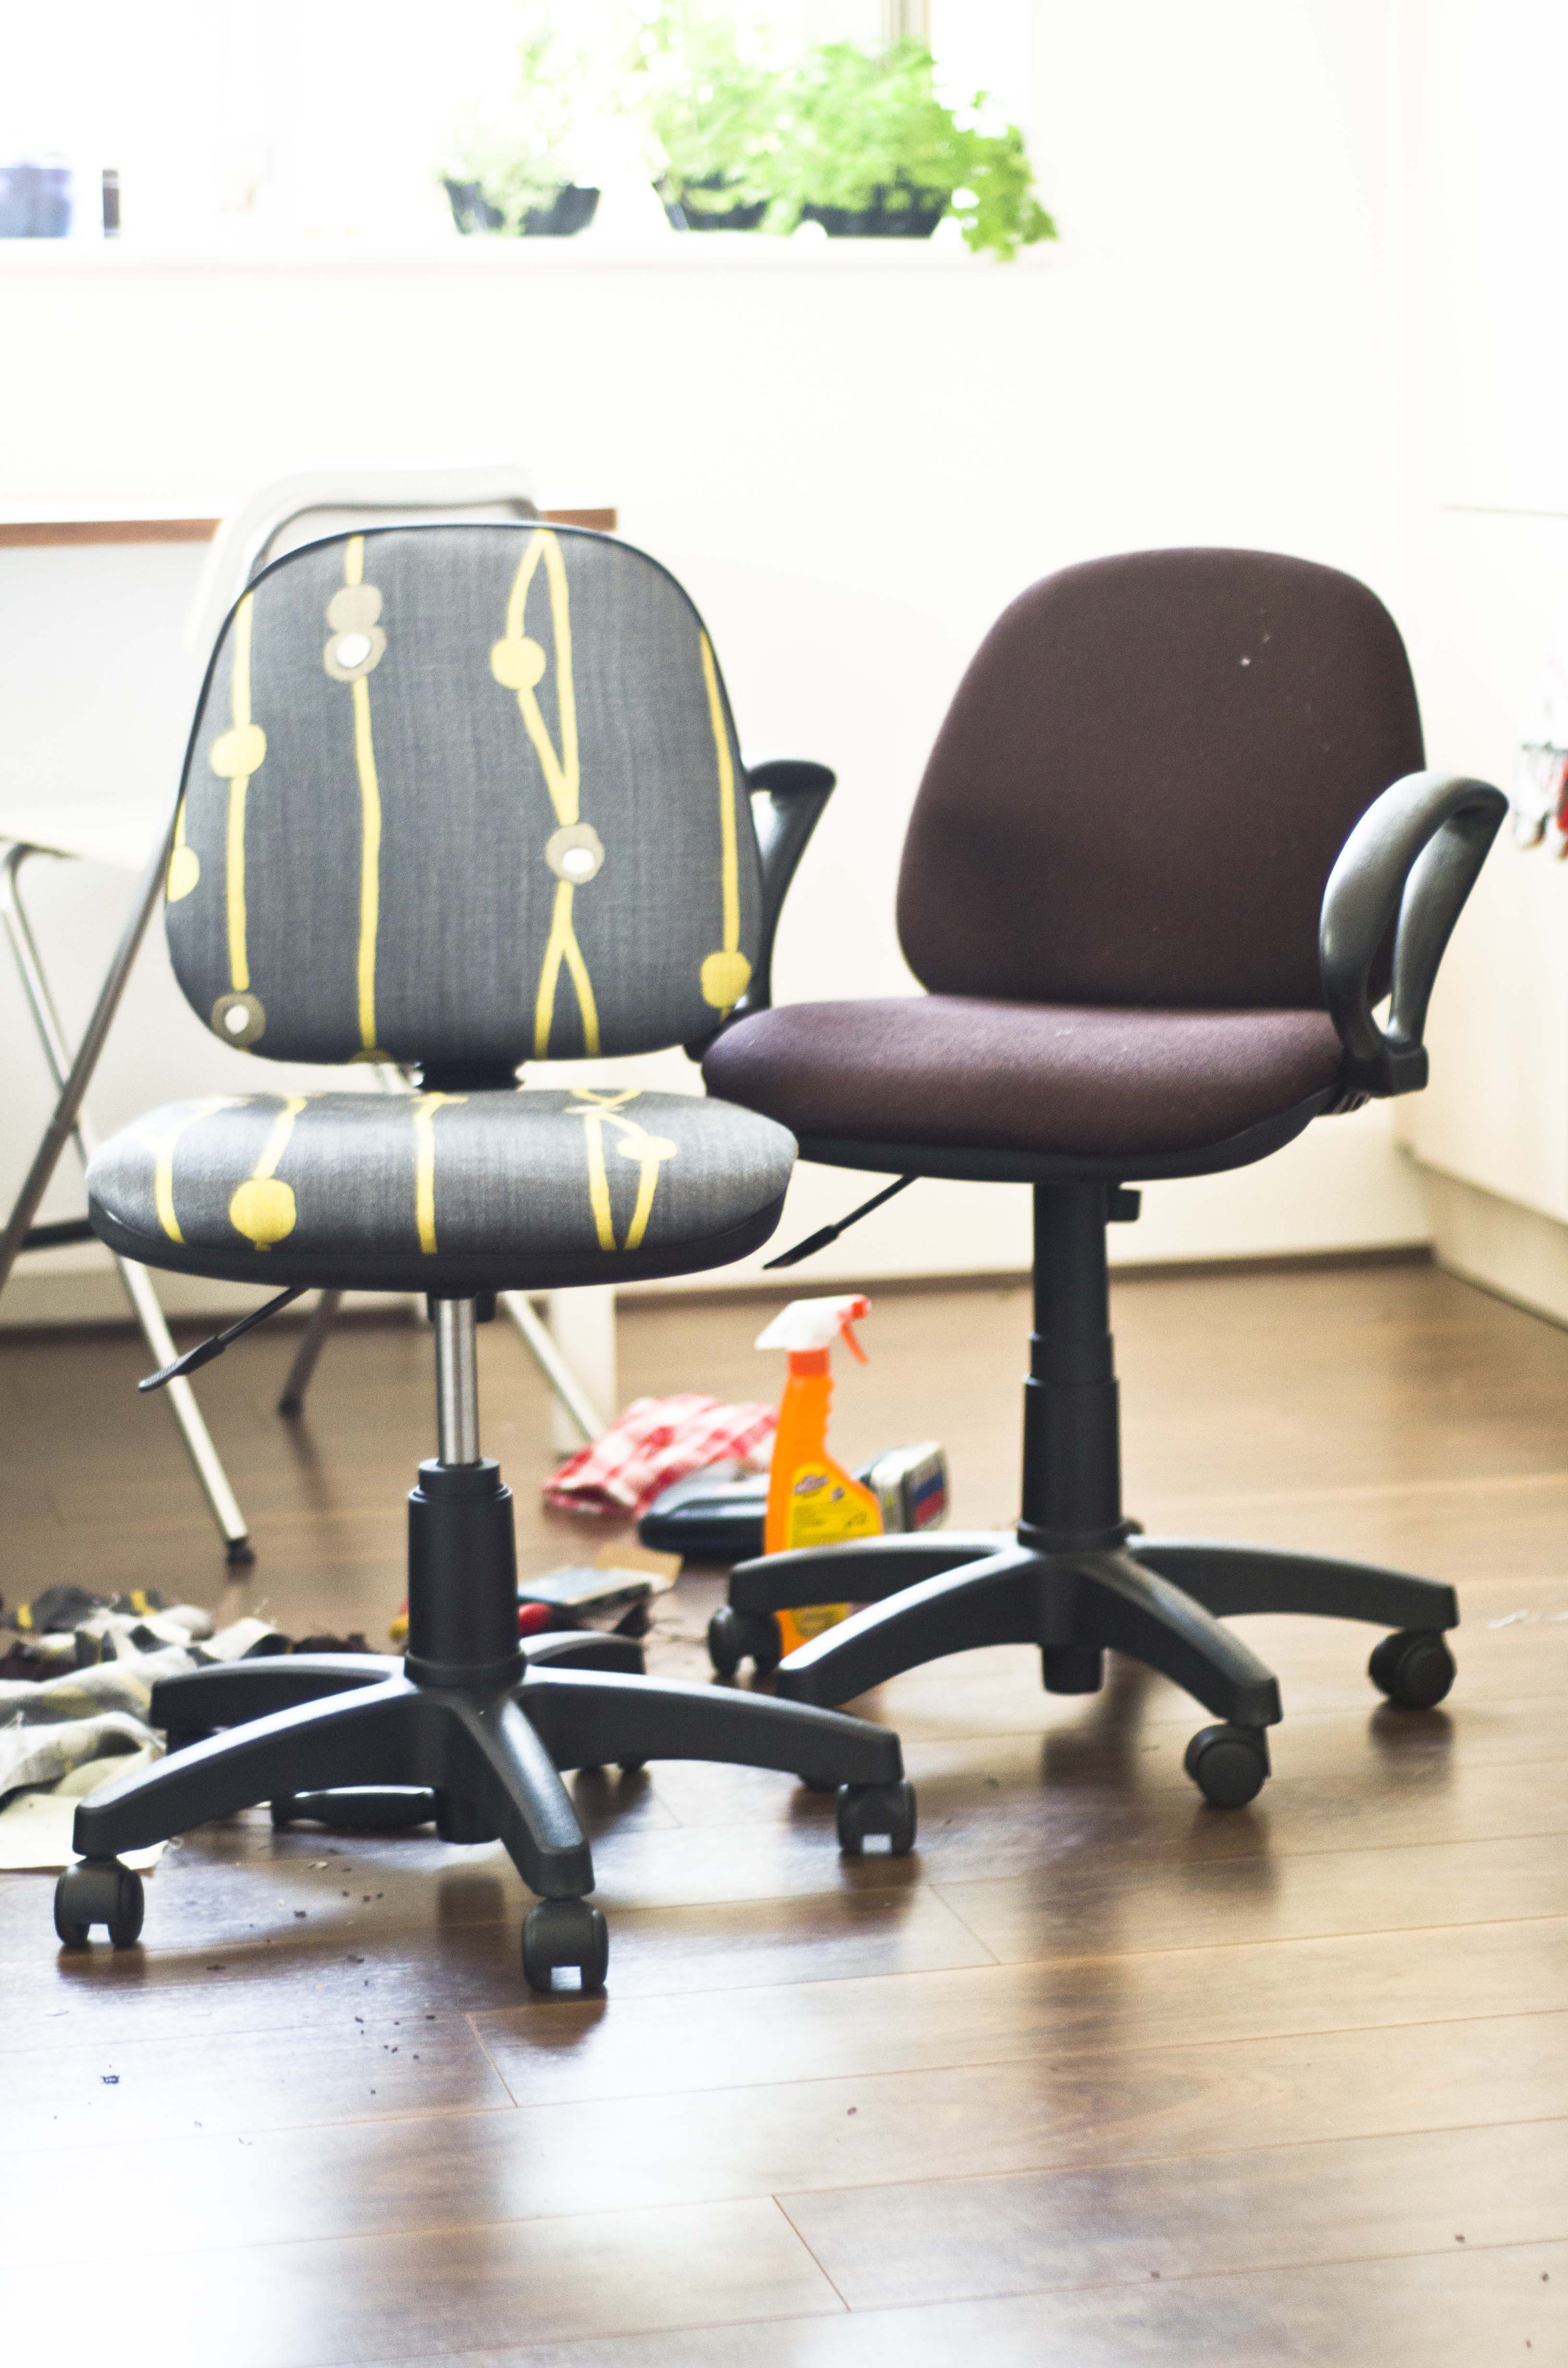 Give Those Old Desk Chairs New Life